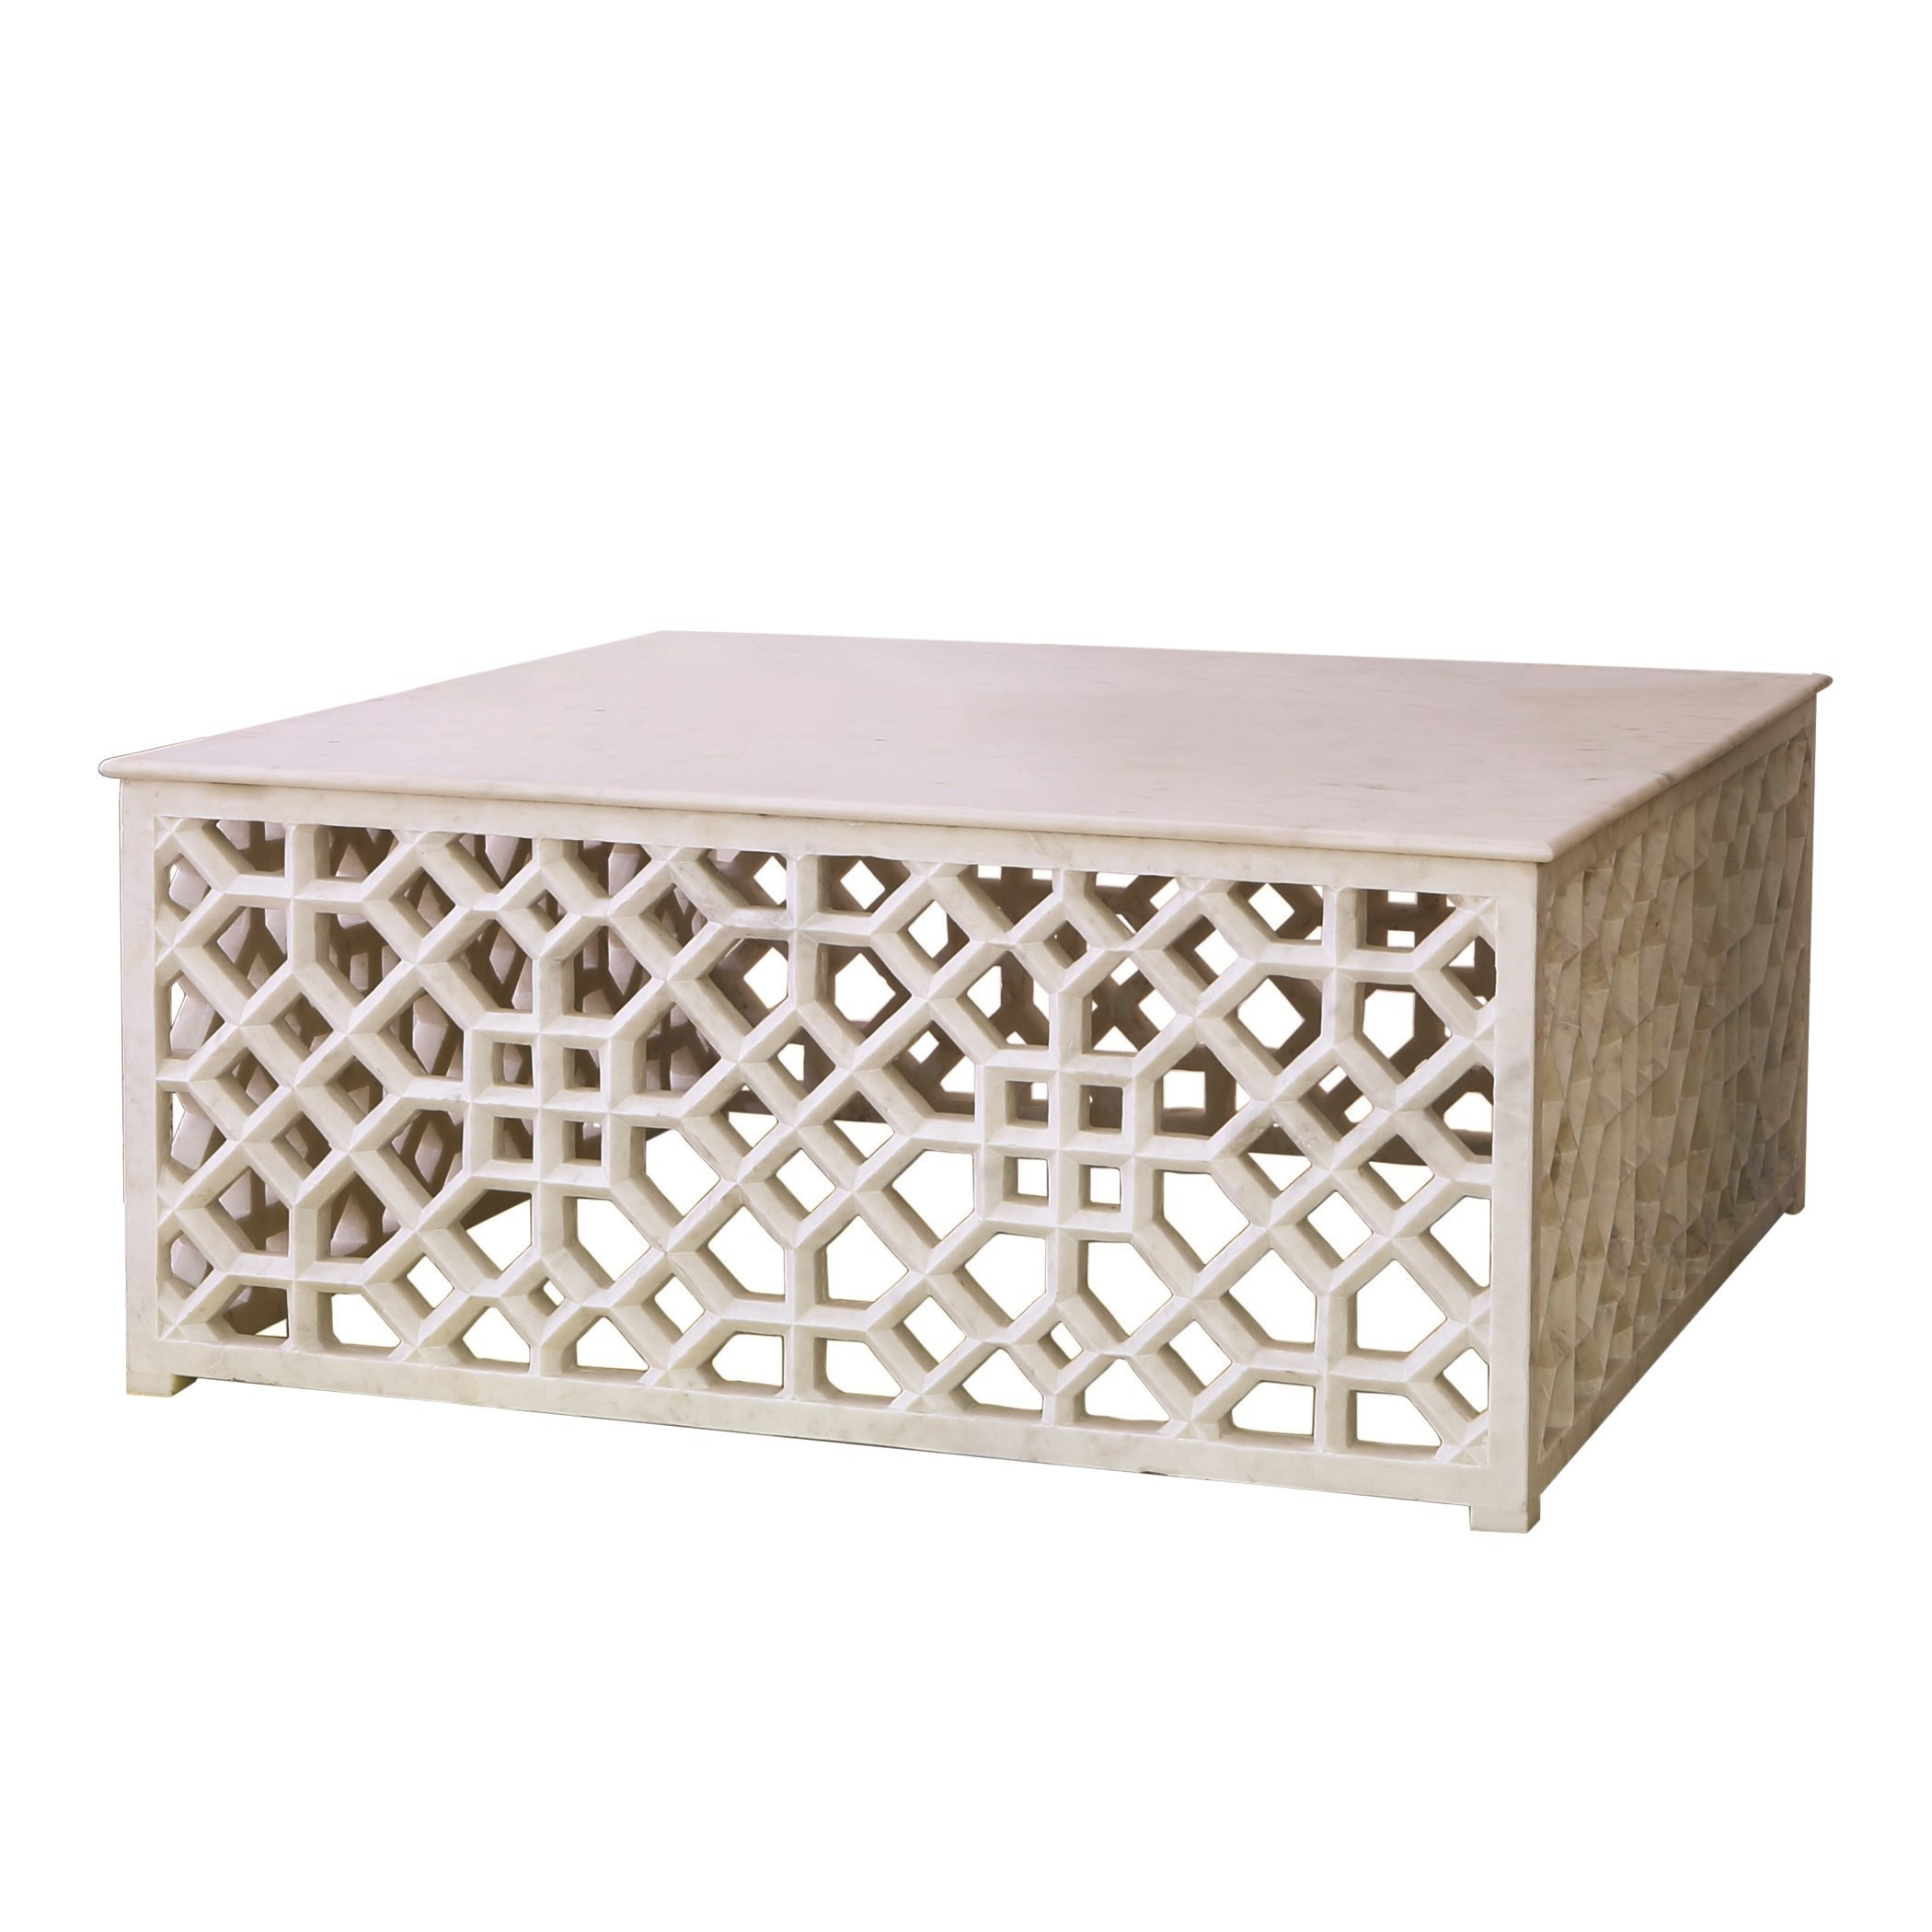 Fretwork Coffee Table.A6 9 91789 Marble Fretwork Coffee Table